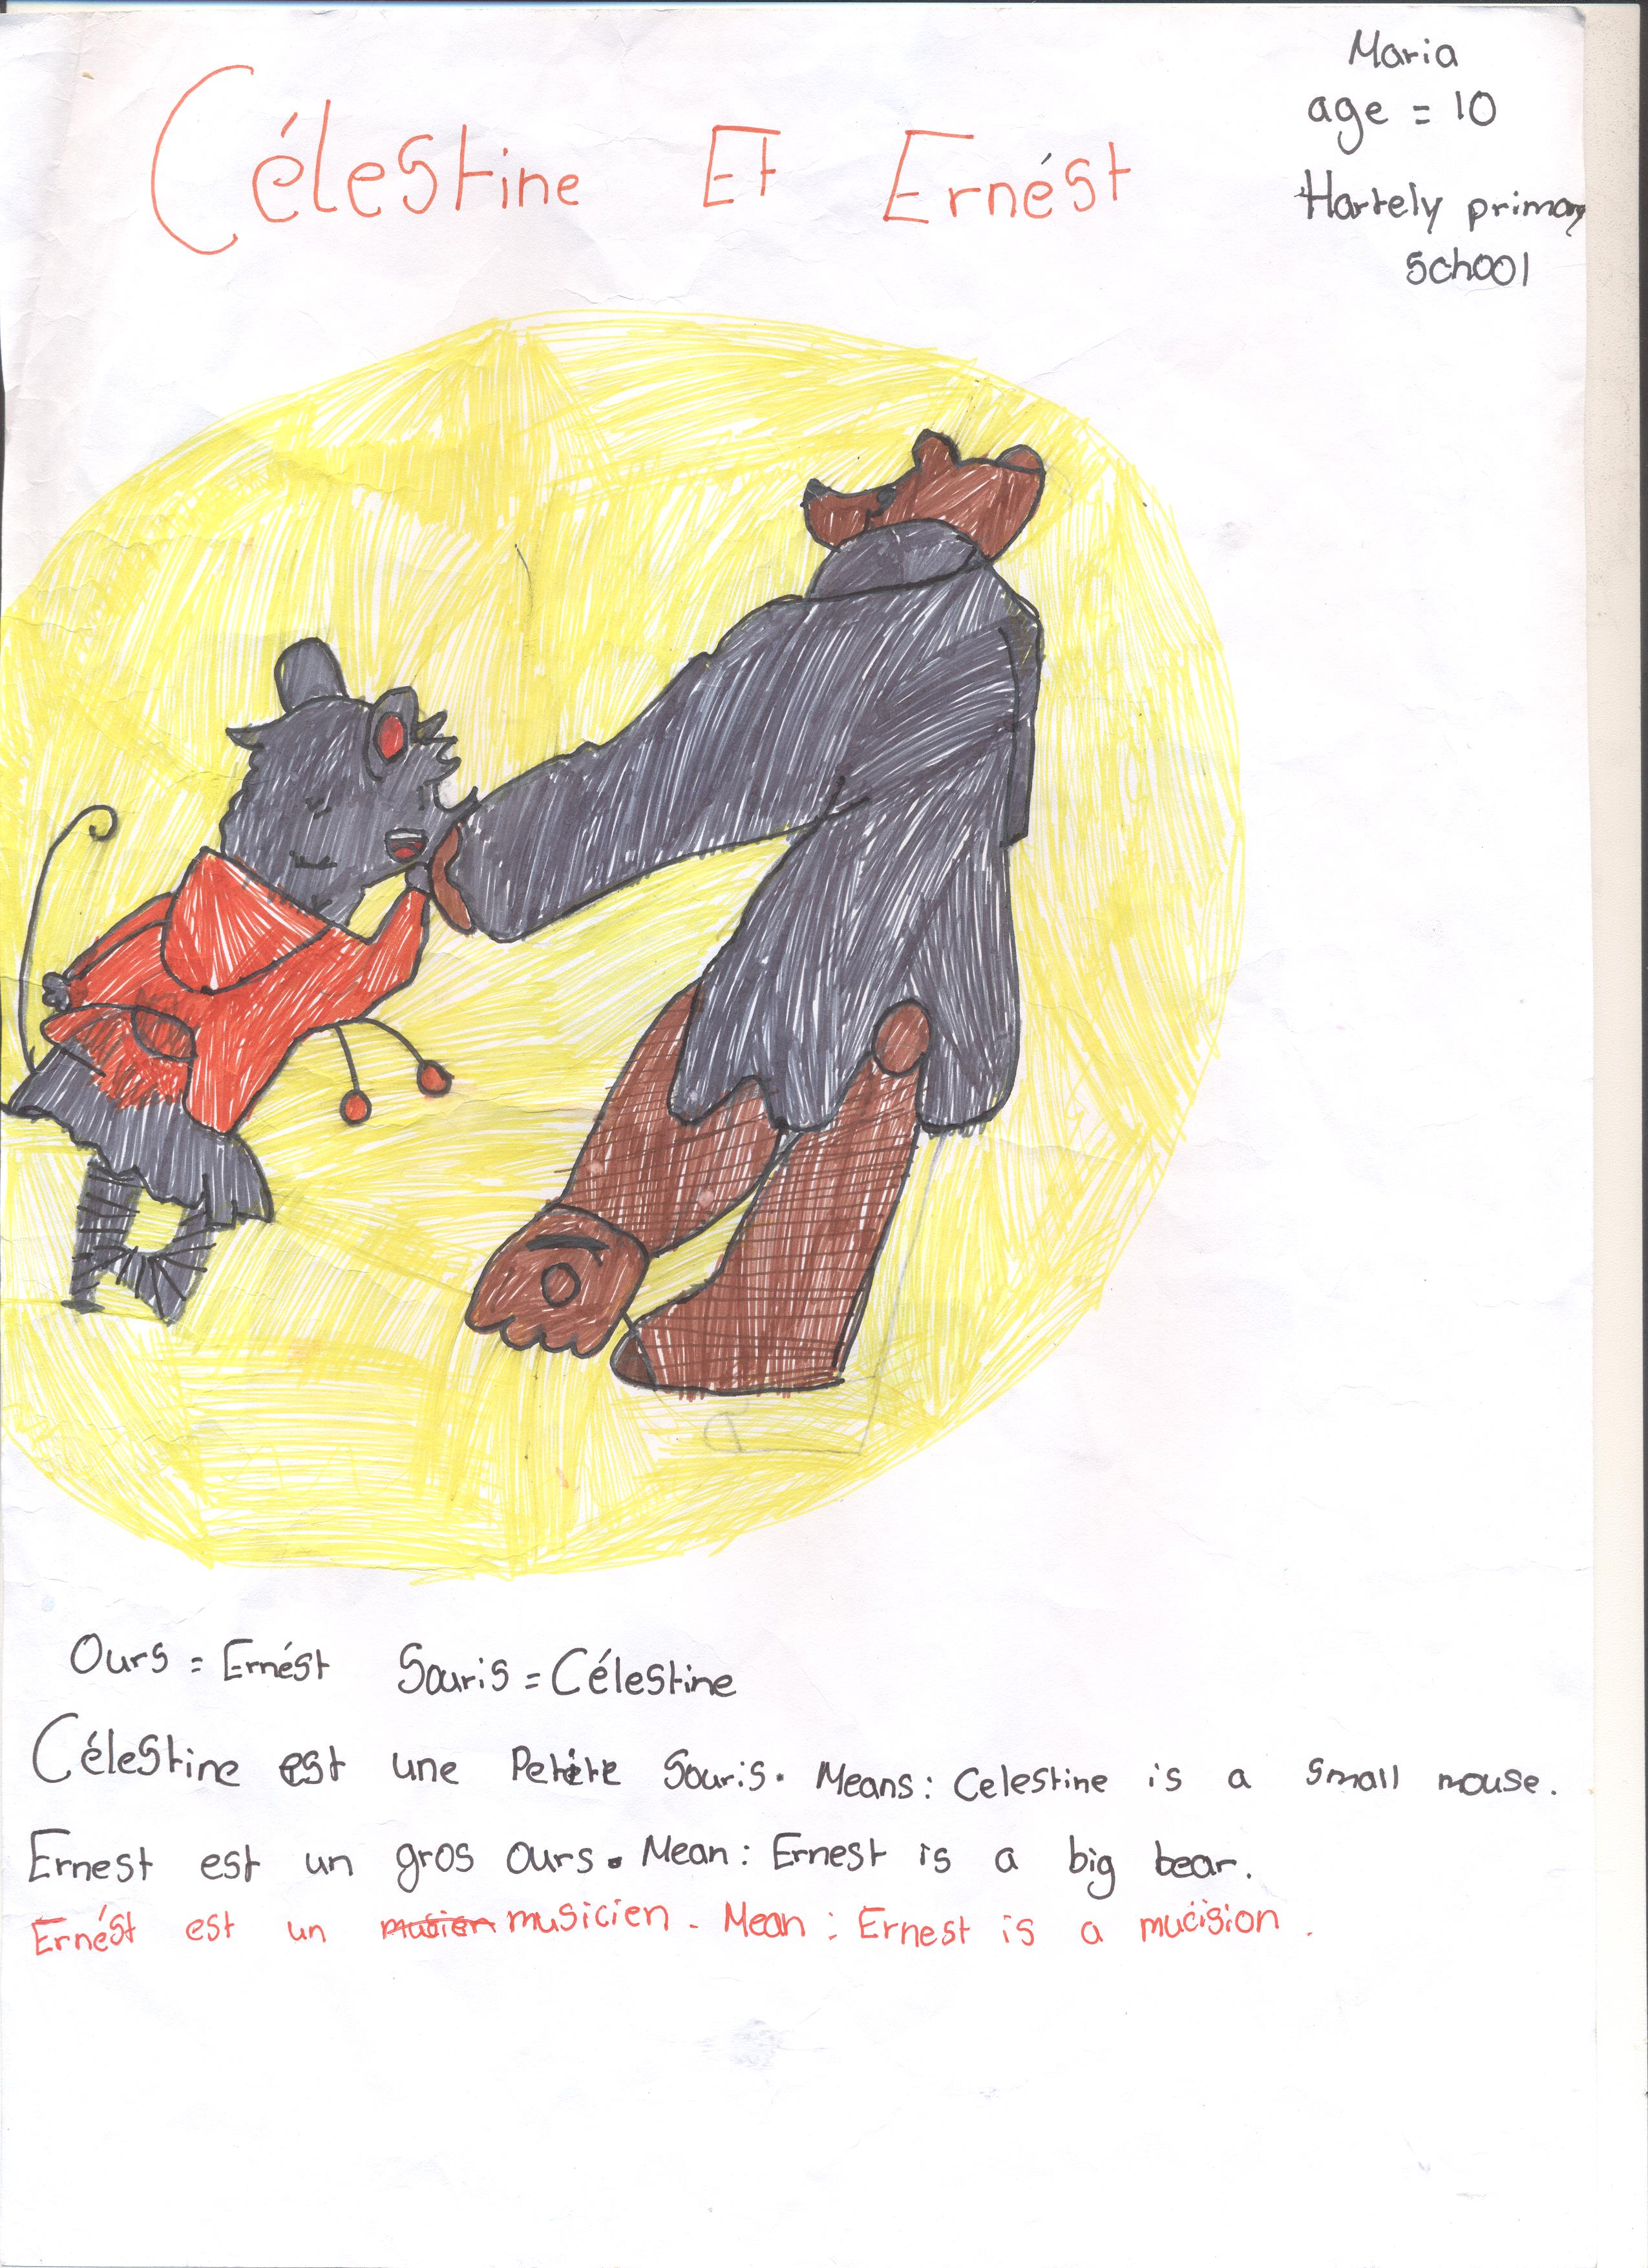 Film Reviews And Drawings From Hartley Primary School Ernest Celestine